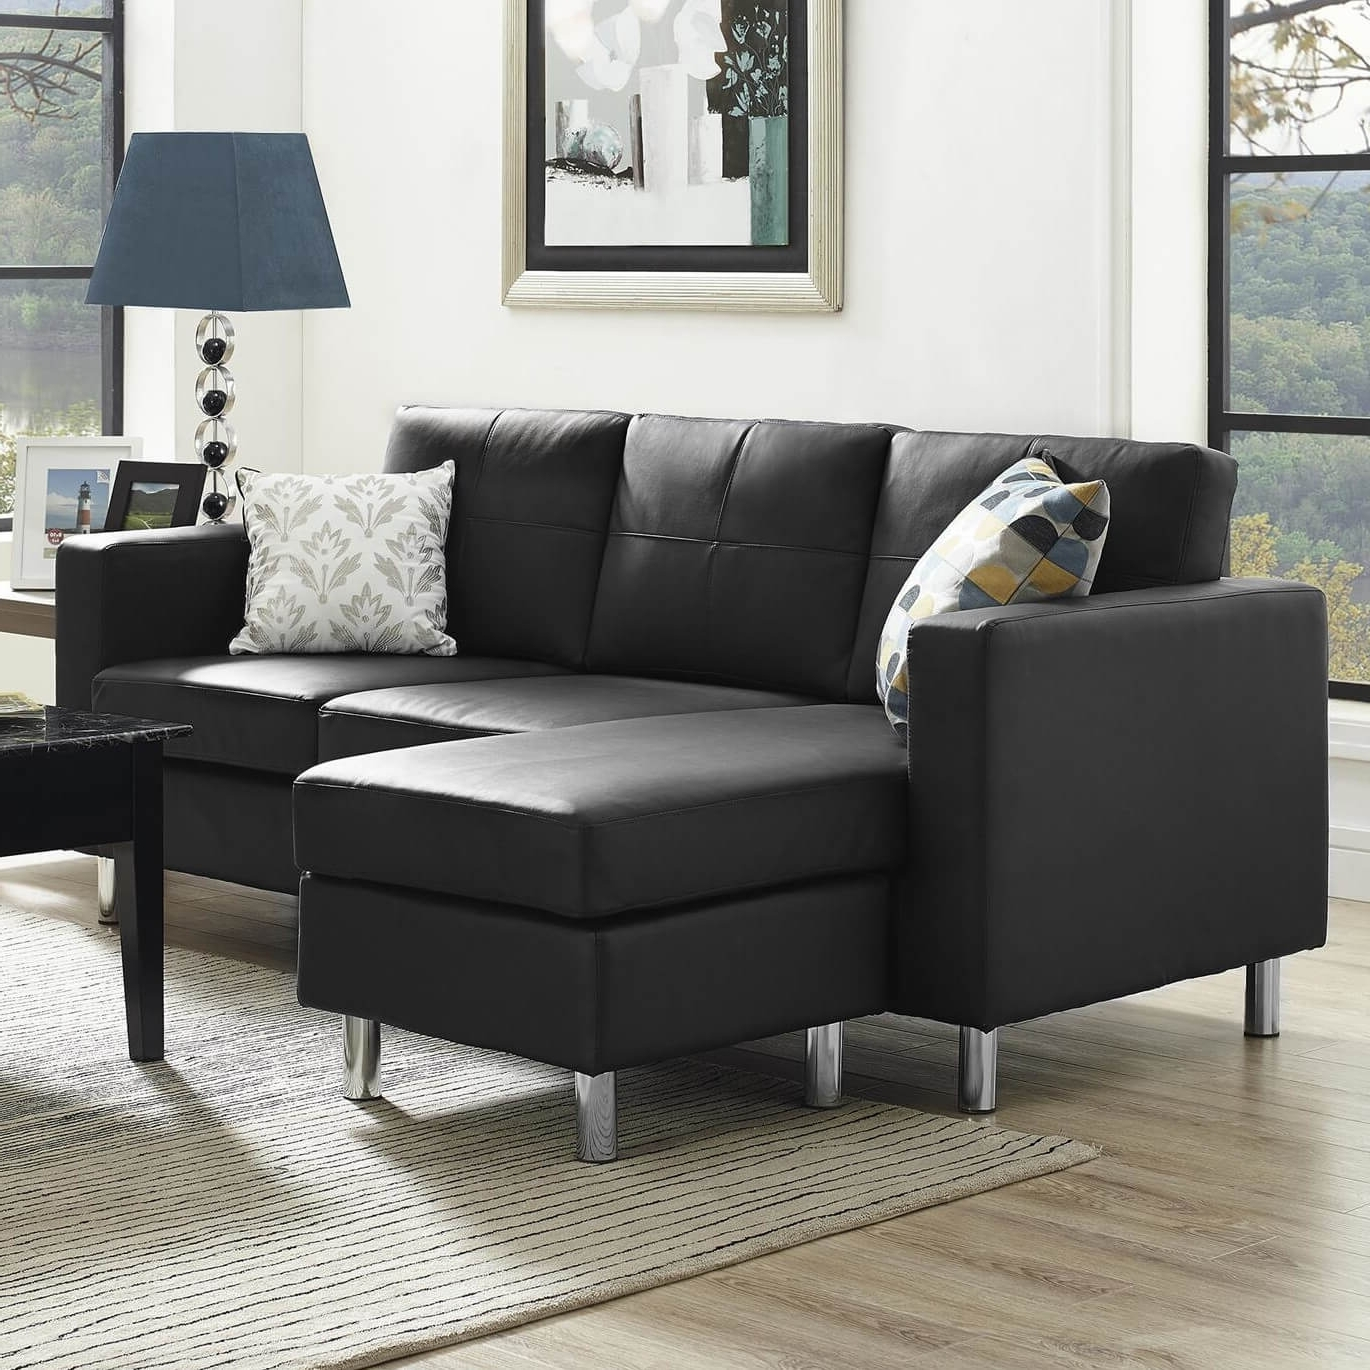 Favorite Sectional Sofas Under 700 Throughout 40 Cheap Sectional Sofas Under $500 For  (View 10 of 15)